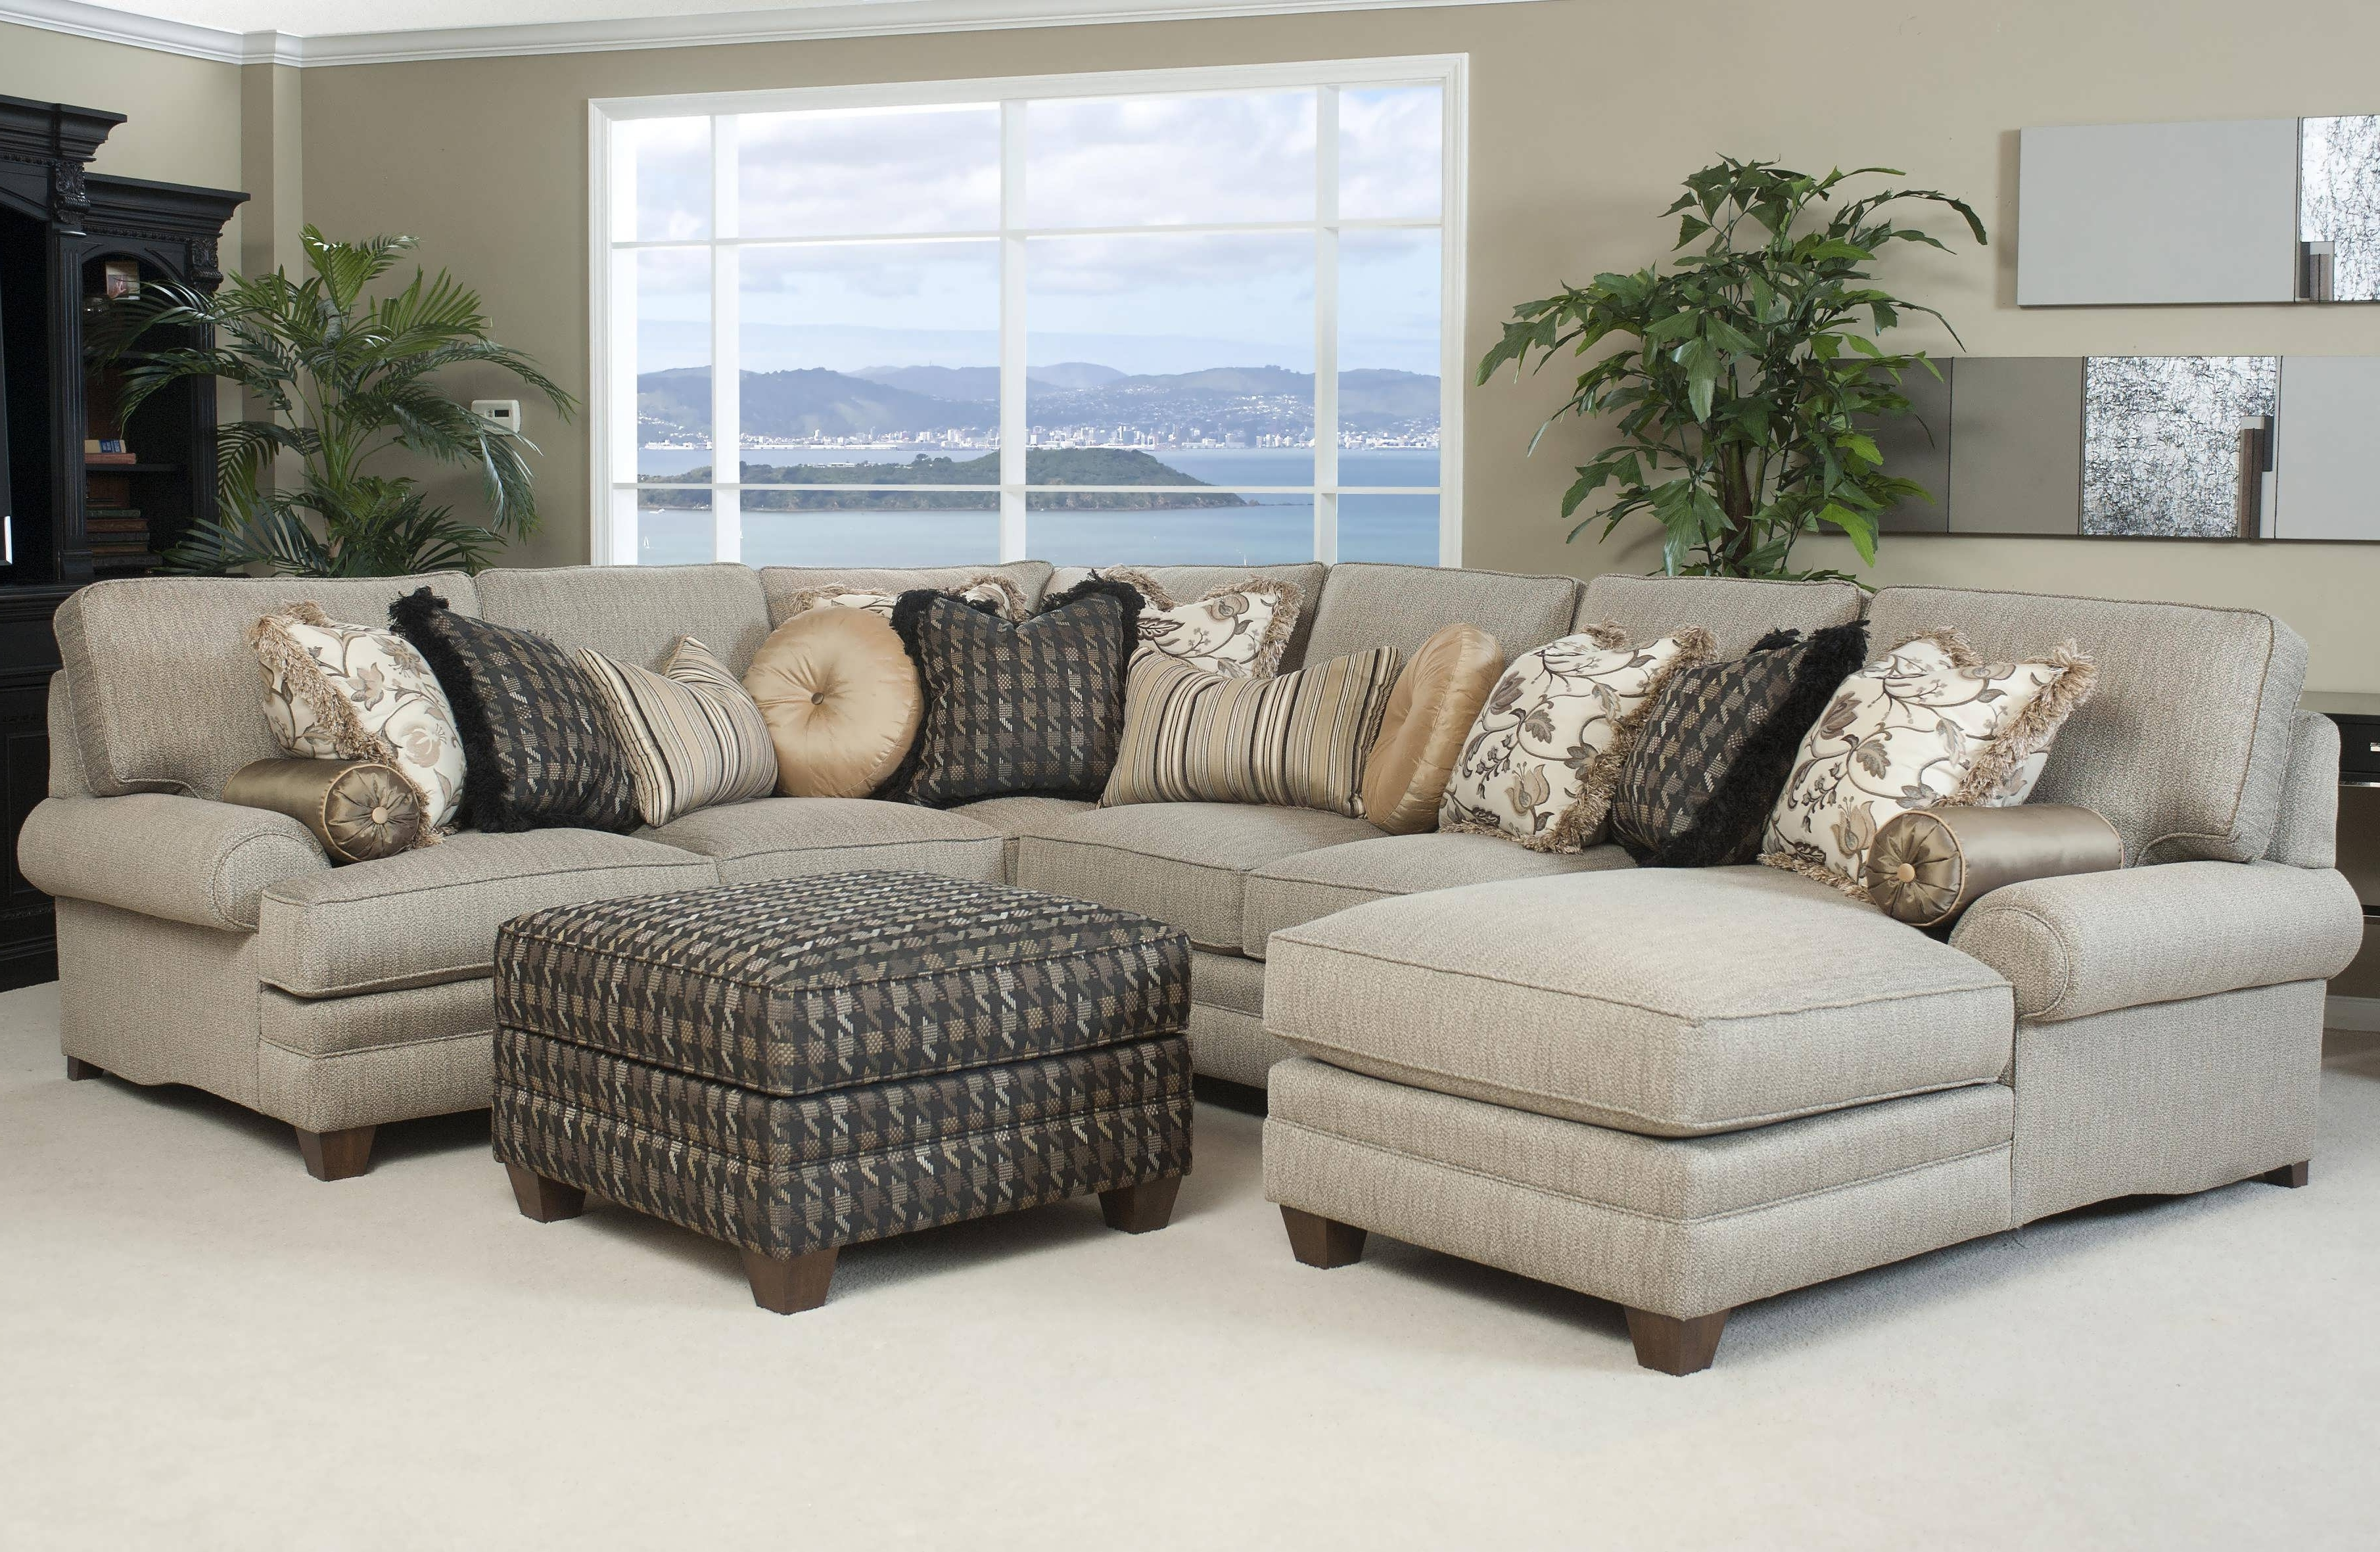 Sofa Chaise Sectionals For Well Known Sofa : Sectional Leather Sectional Sofas And Sectionals Leather (View 11 of 15)